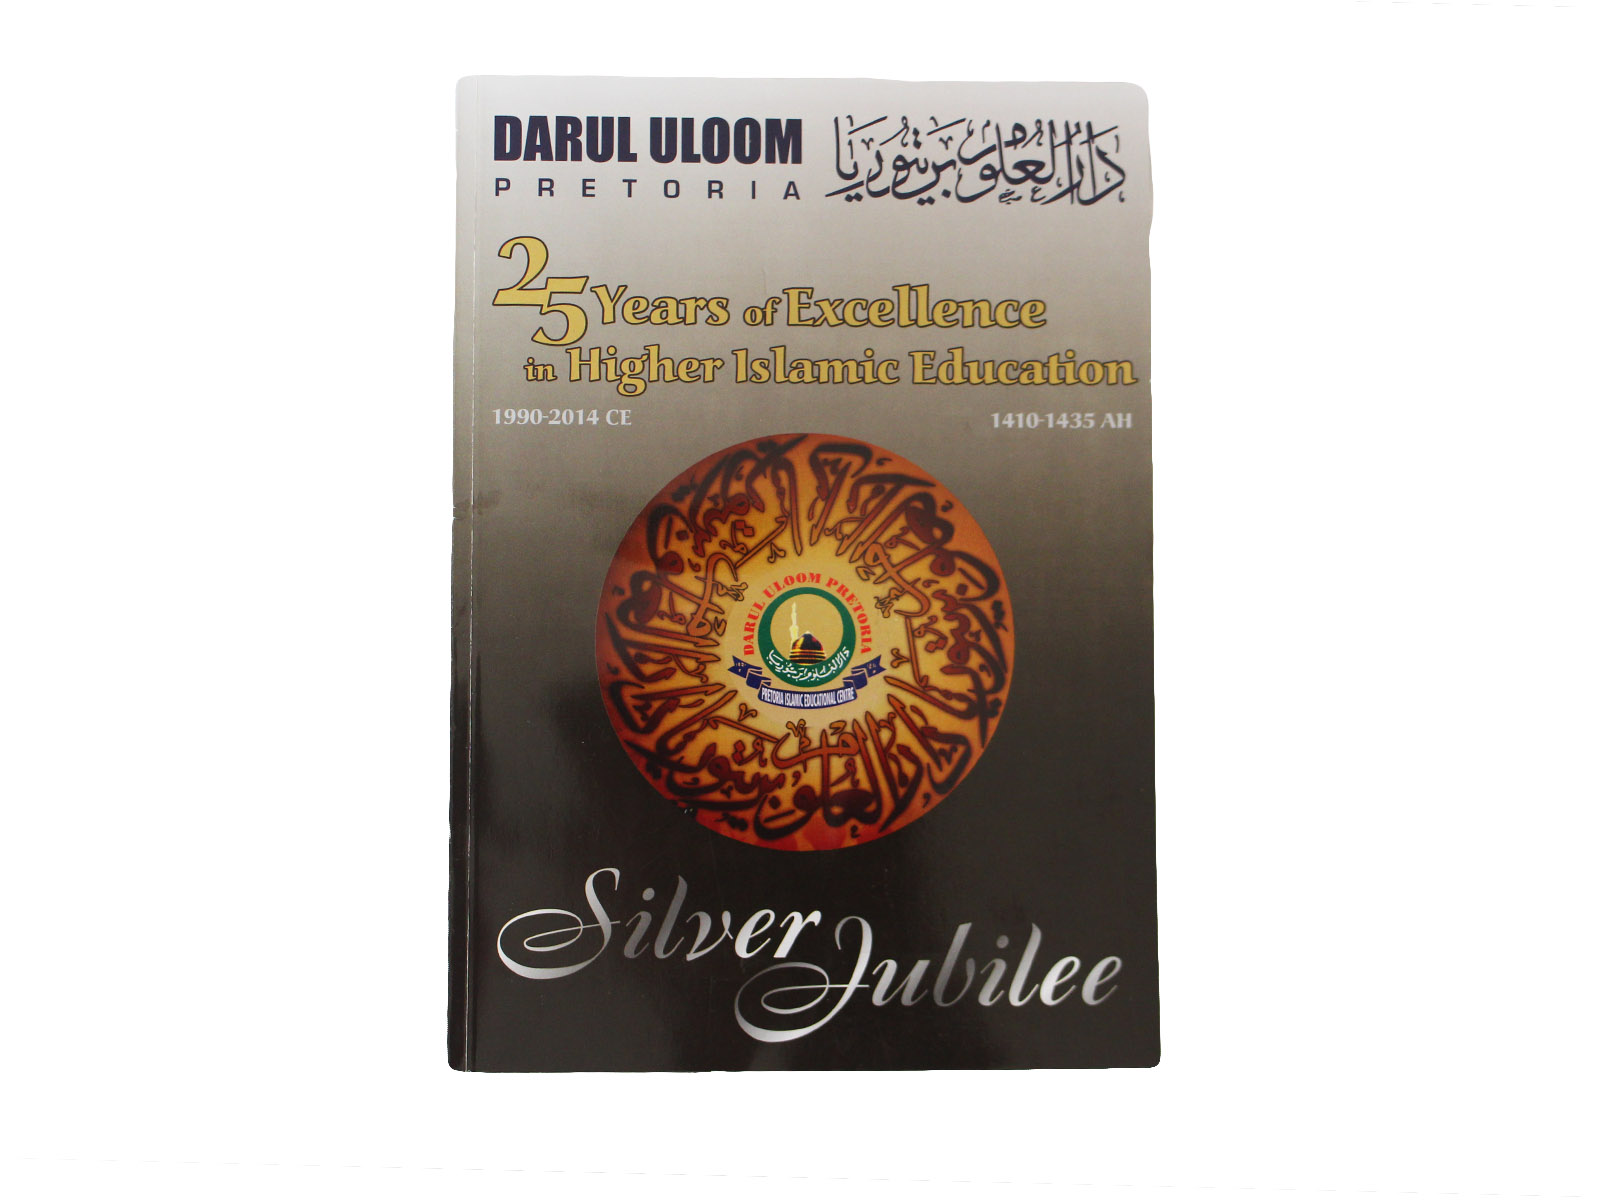 Darul Uloom Pretoria Silver Jubilee Brochure - 25 years of Excellence in Higher Islamic Education